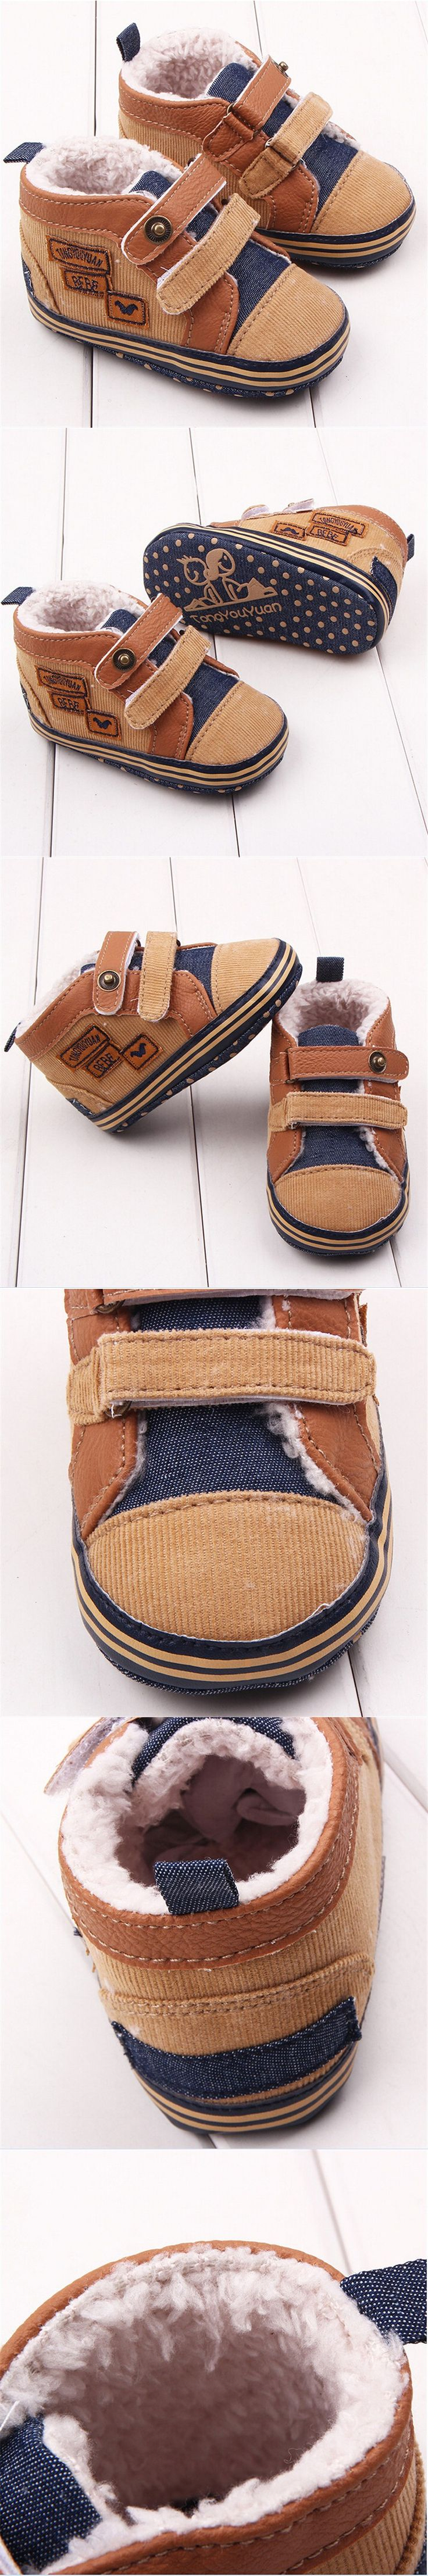 1 pair 11-13cm Infant Toddler Baby Shoes New Born Leather Baby Moccasins PU Leather Boy Shoe Winter Infantil Baby Girl Boots